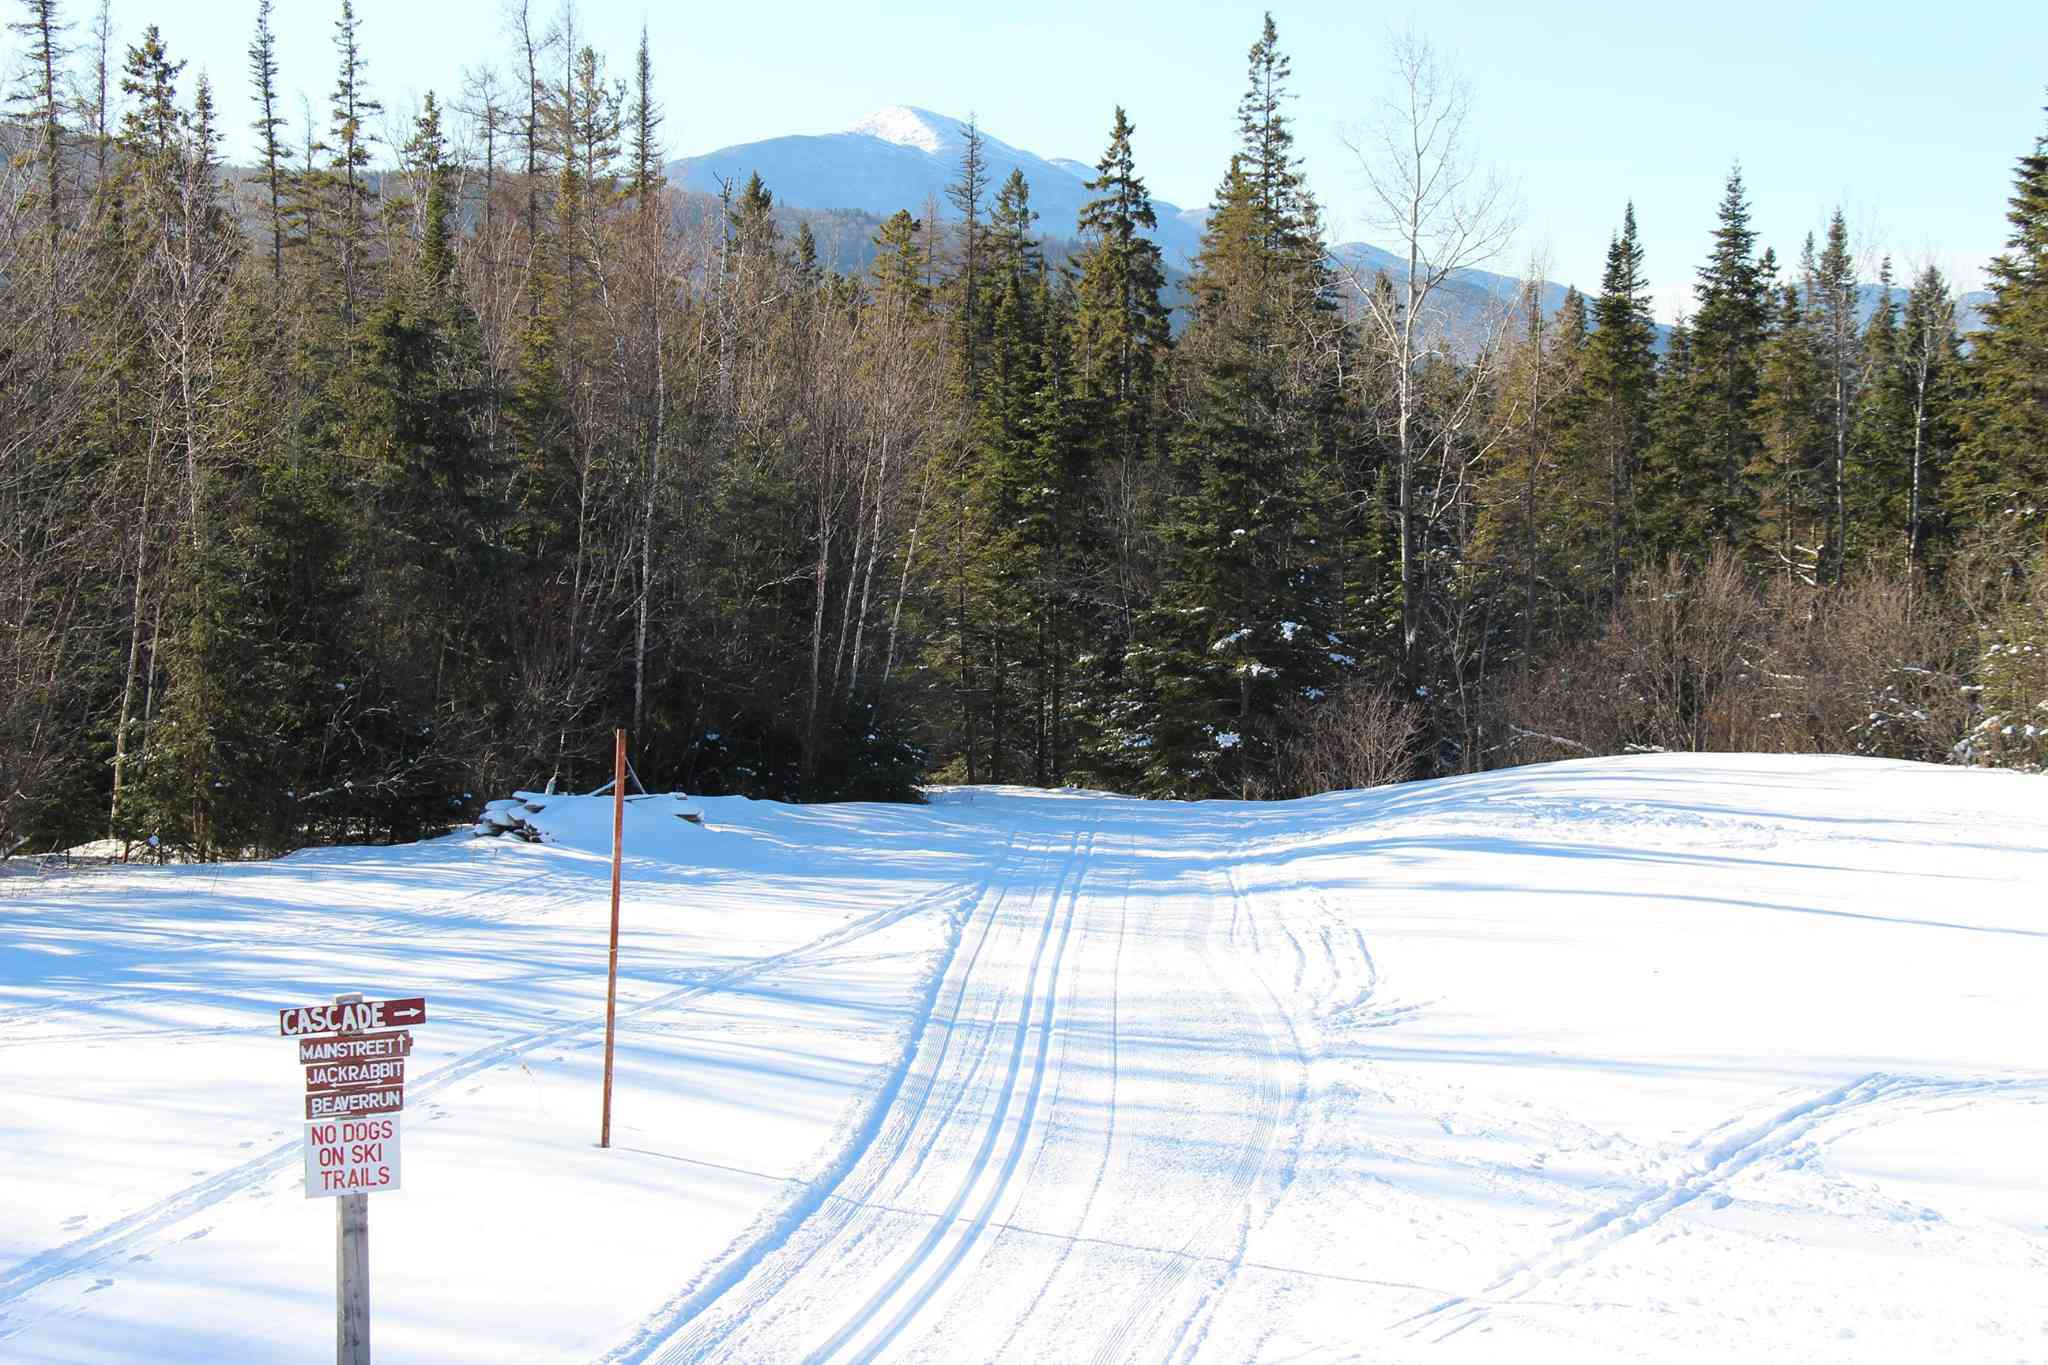 view of ski trails and a sign posts with a line of trees in the background